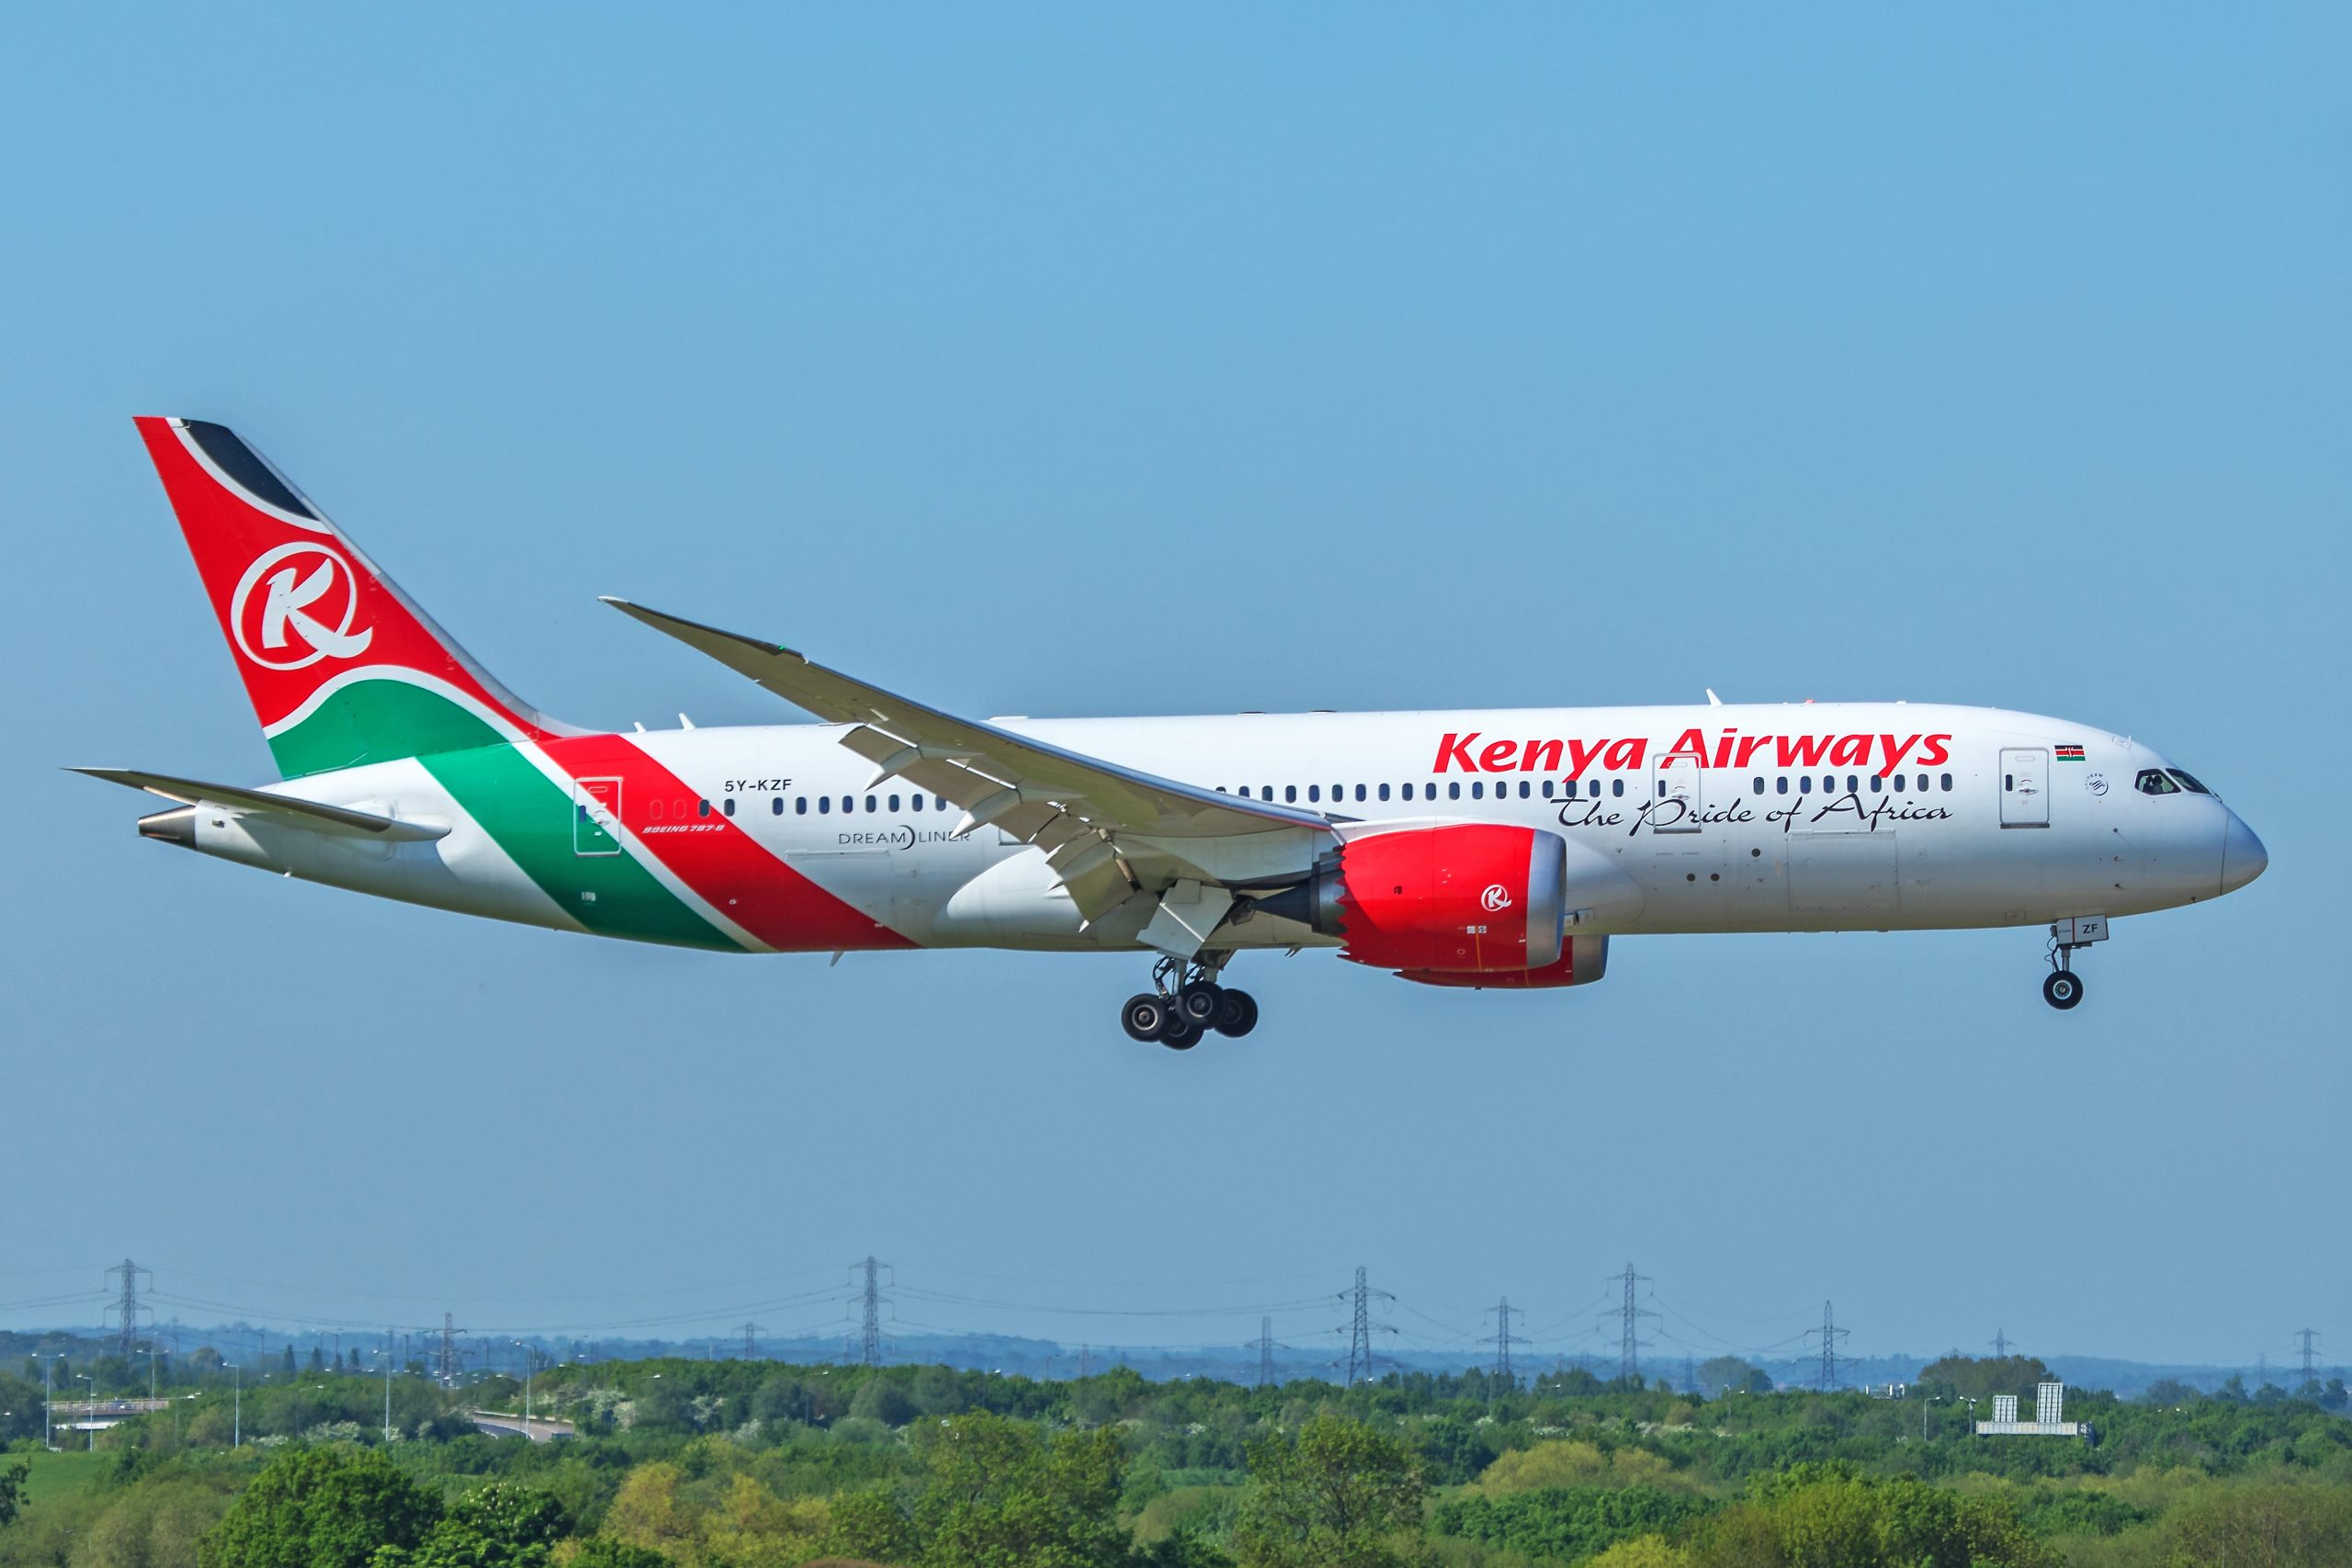 Kenya Airways B7878 LHR William Derrickson